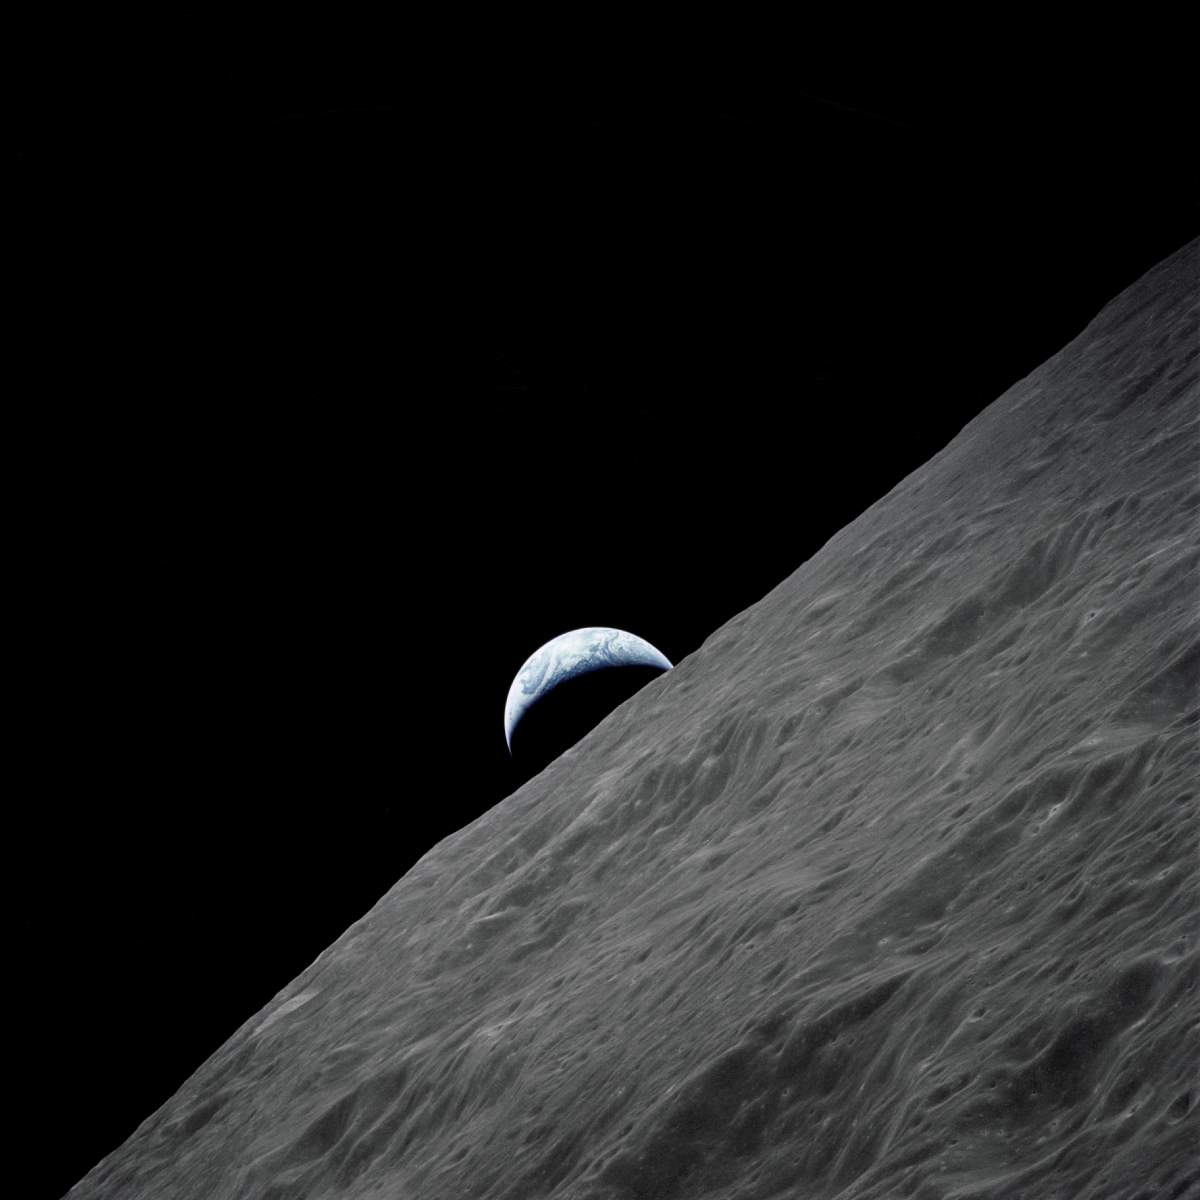 Crescent Earth rises above the lunar horizon - Apollo 17 photo